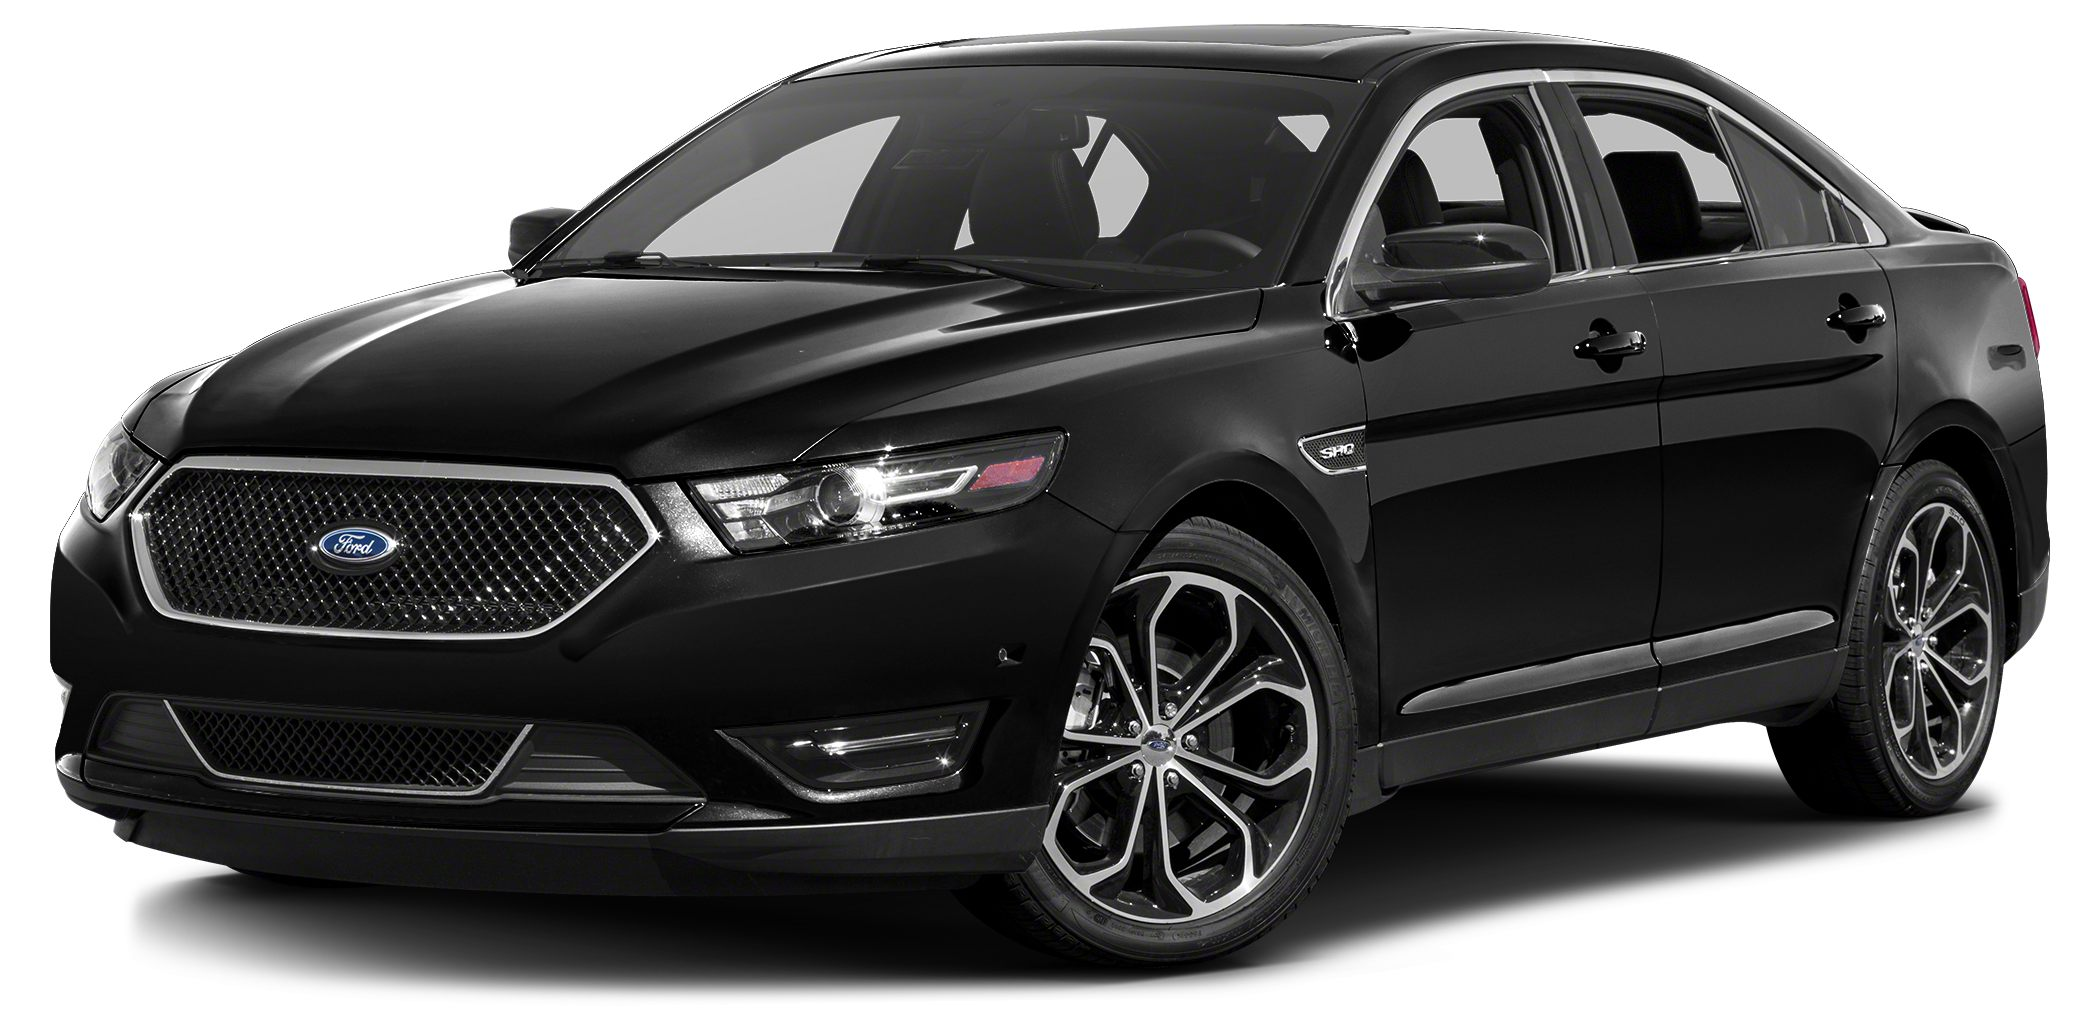 2015 Ford Taurus SHO CARFAX 1-Owner GREAT MILES 13335 REDUCED FROM 32355 PRICED TO MOVE 60